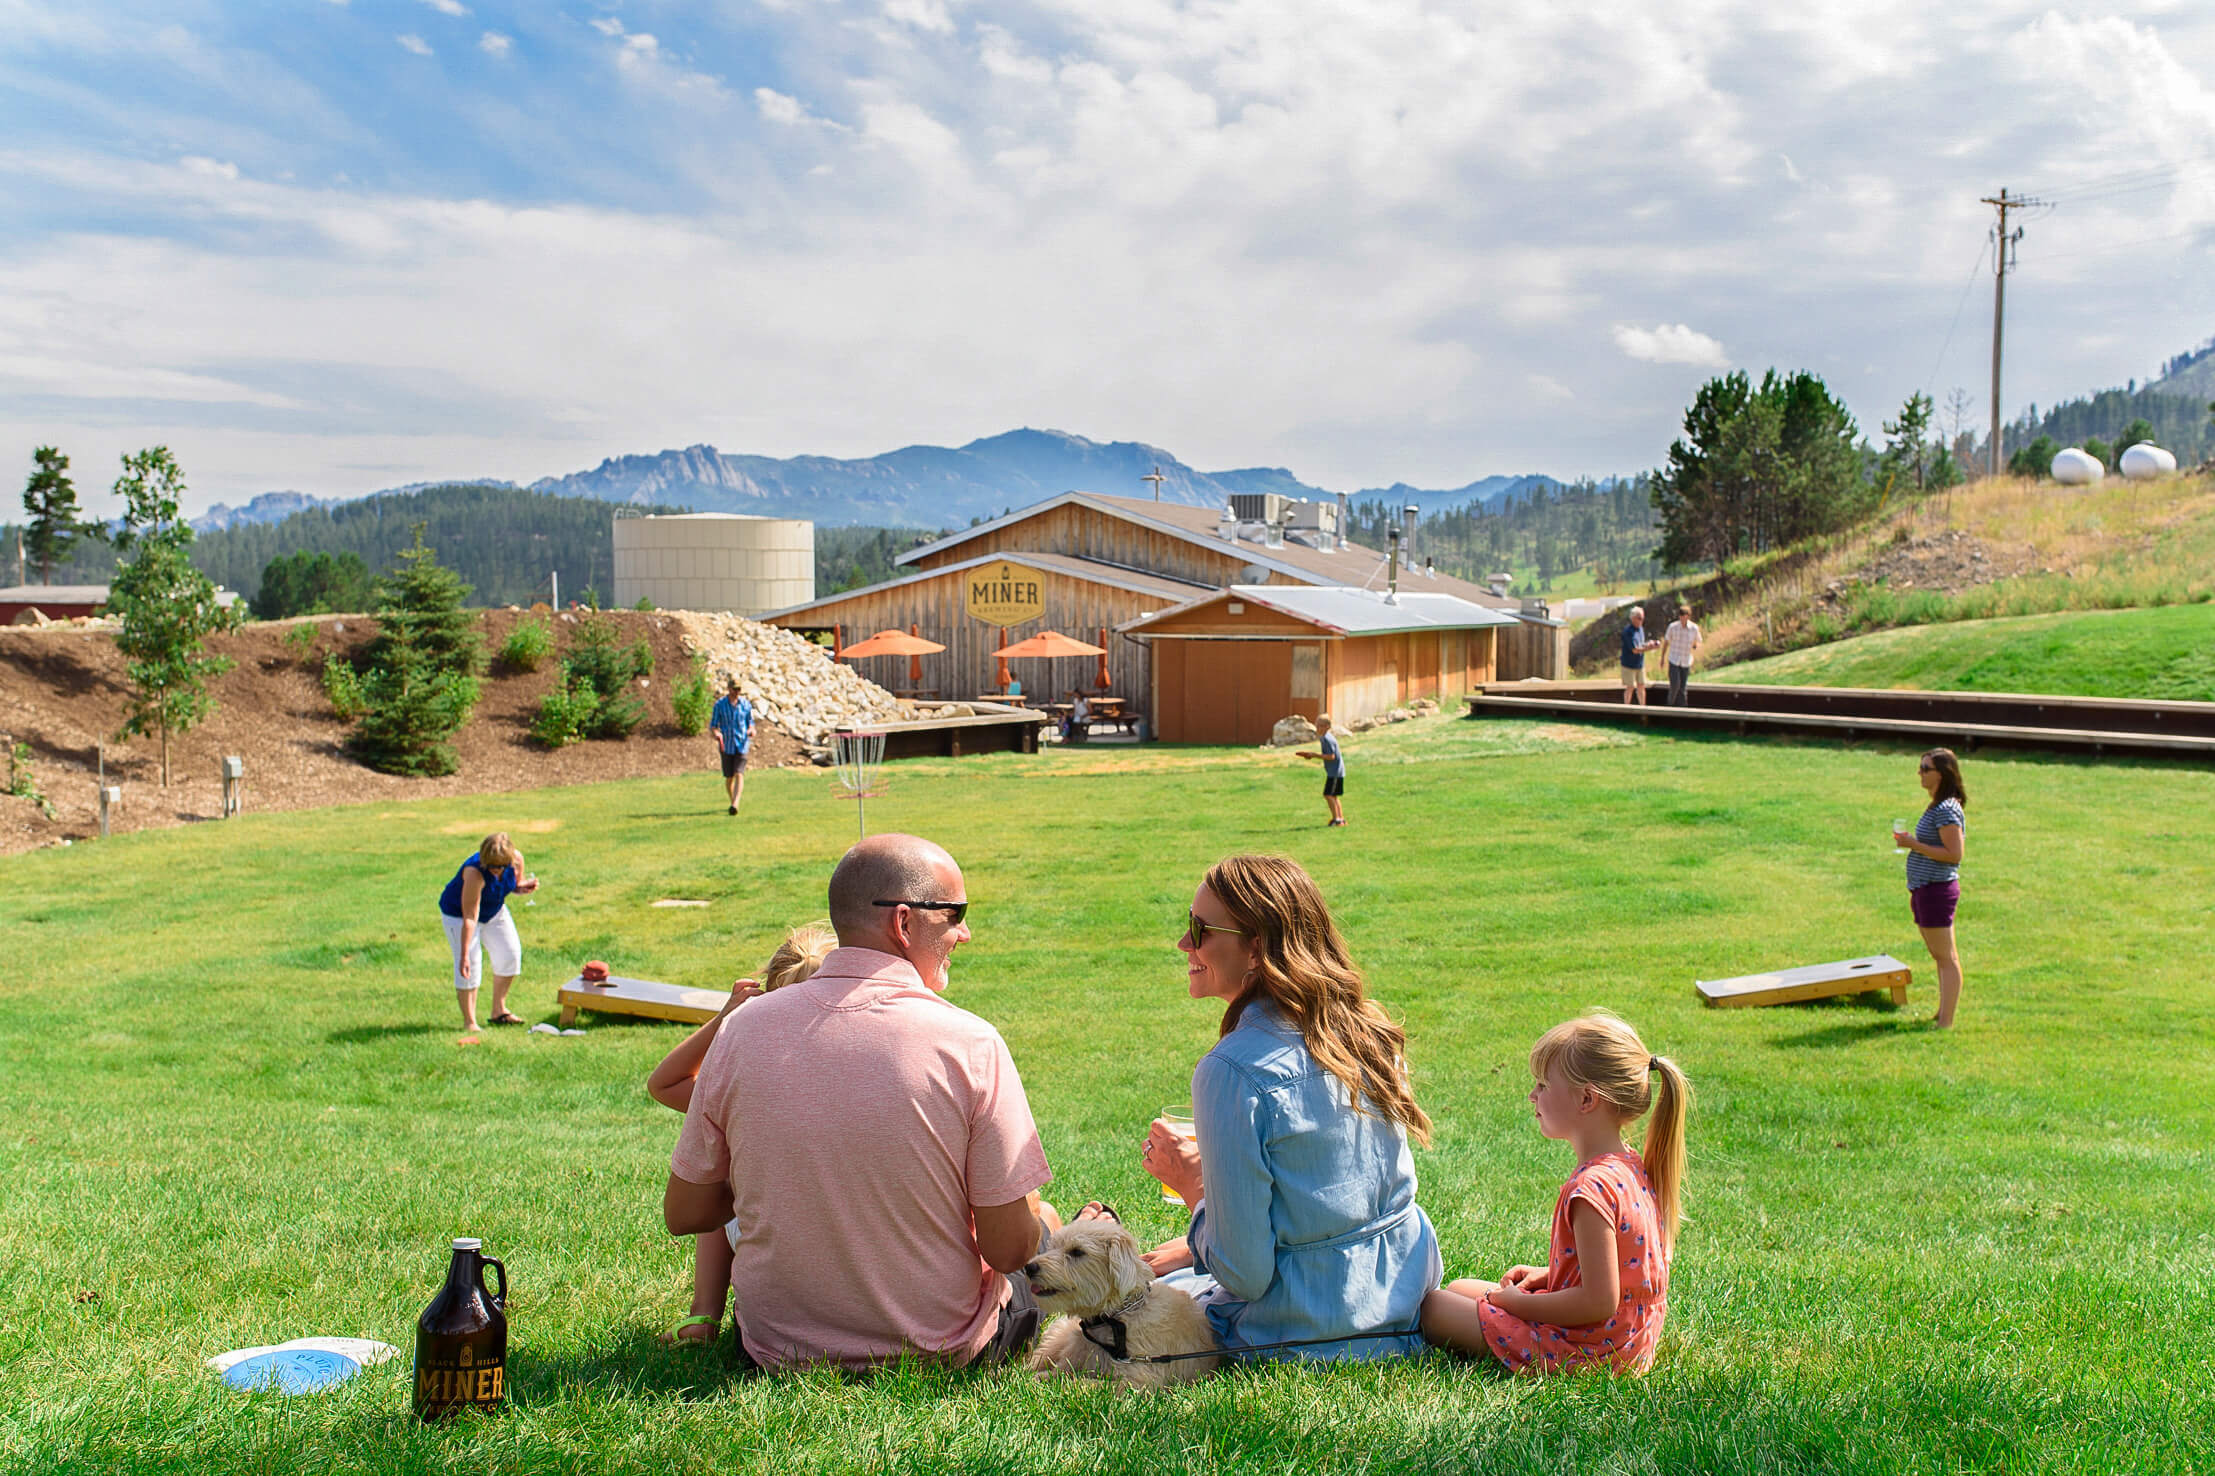 Enjoy cornhole, bocce ball, frisbee golf, and more on one of the pristine lawns on the Prairie Berry Winery campus